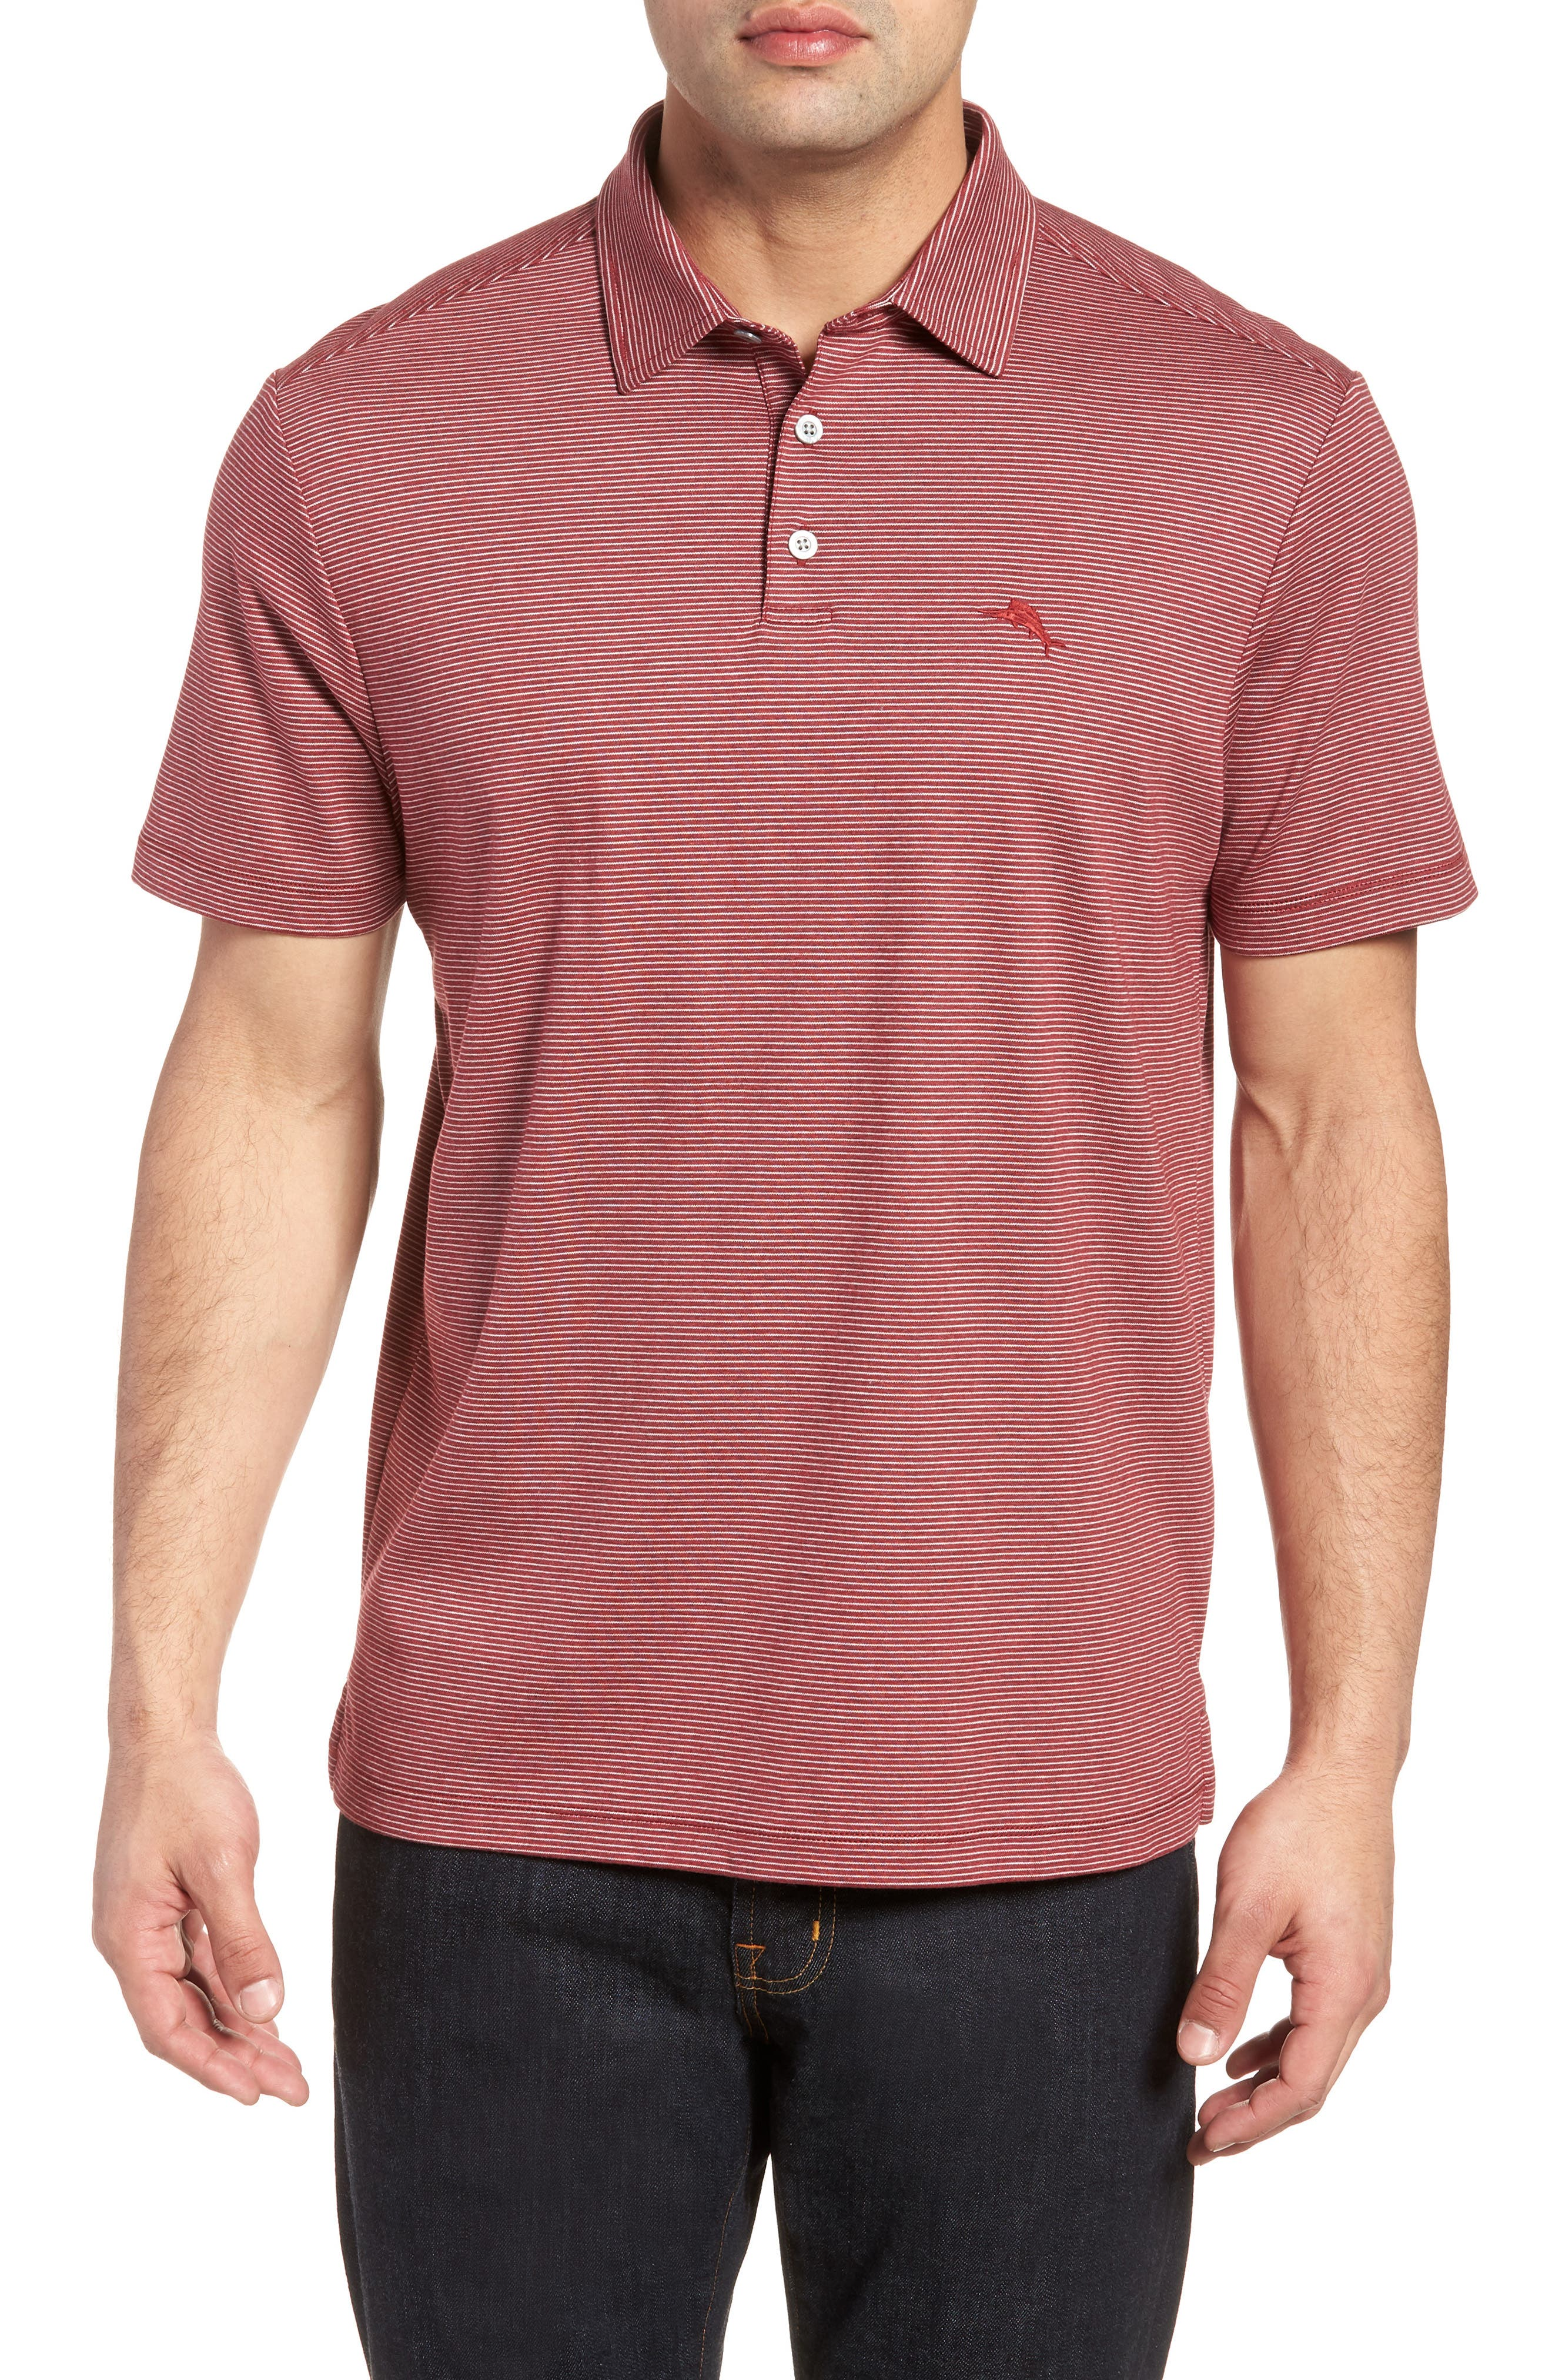 Pacific Shore Polo,                         Main,                         color, Beet Red Heather